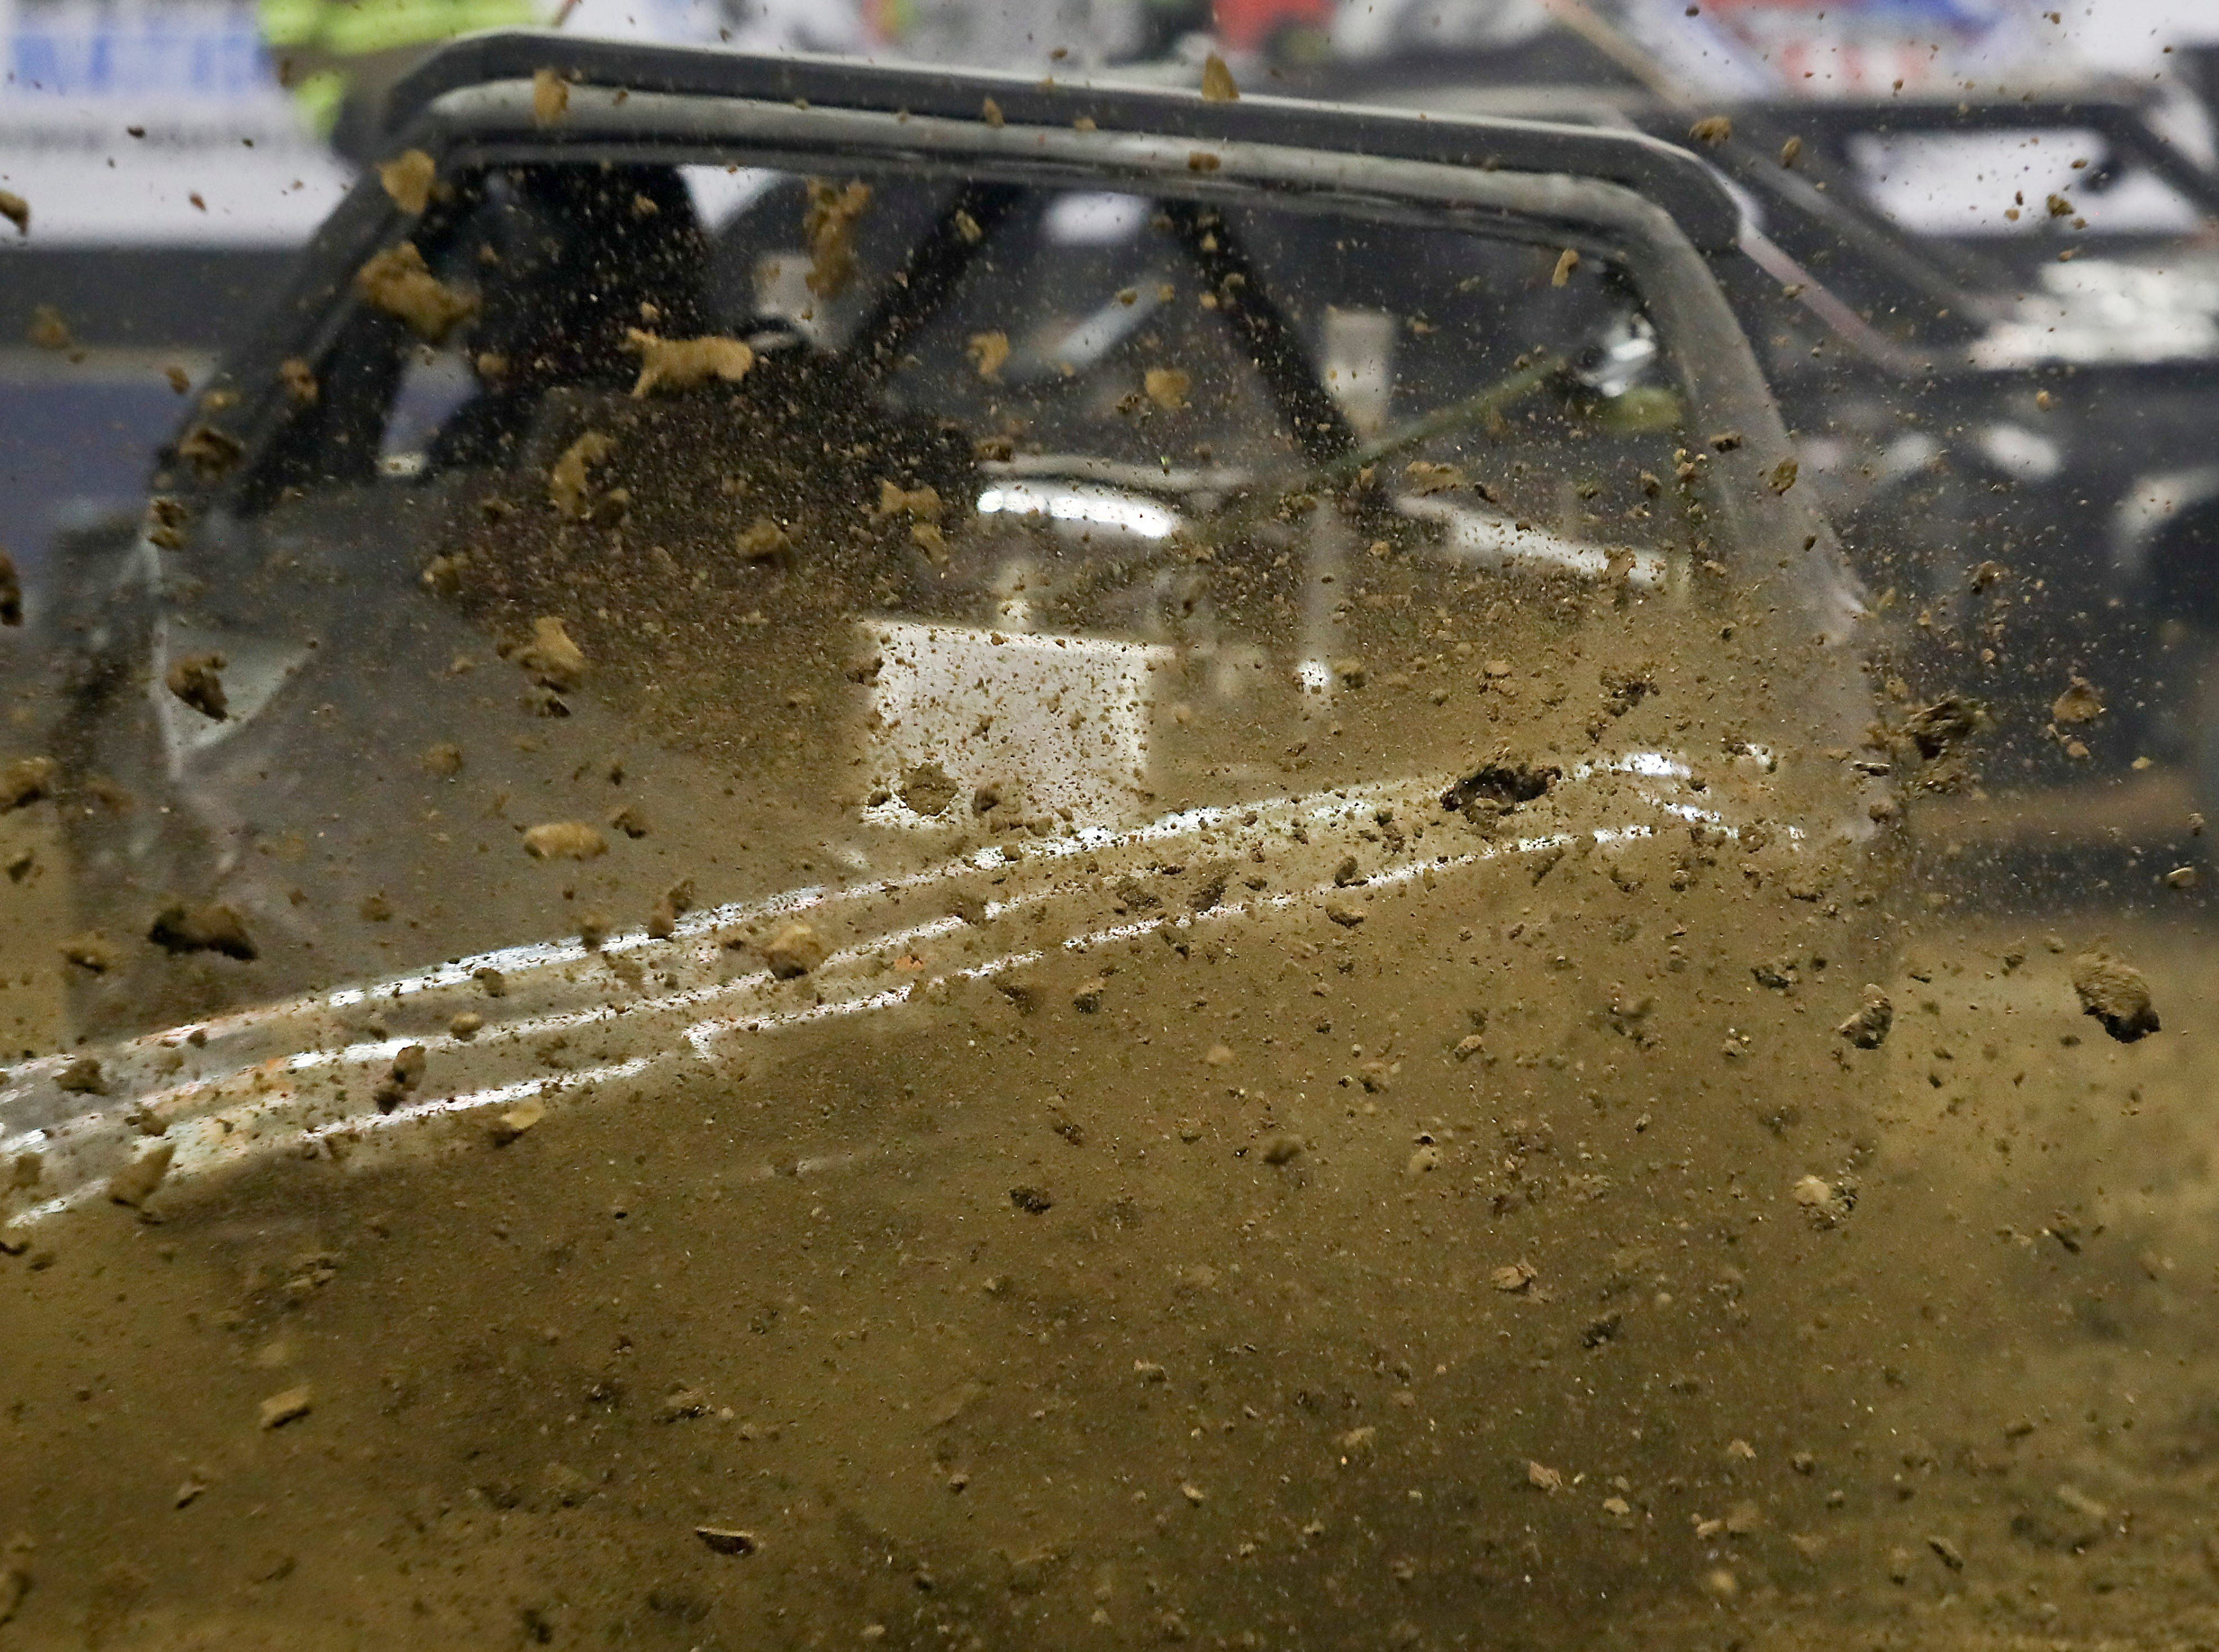 Metal crunching and dirt flying entertained the crowd at the 4th annual Bluegrass Bash Demolition Derby in Freedom Hall on March 23.